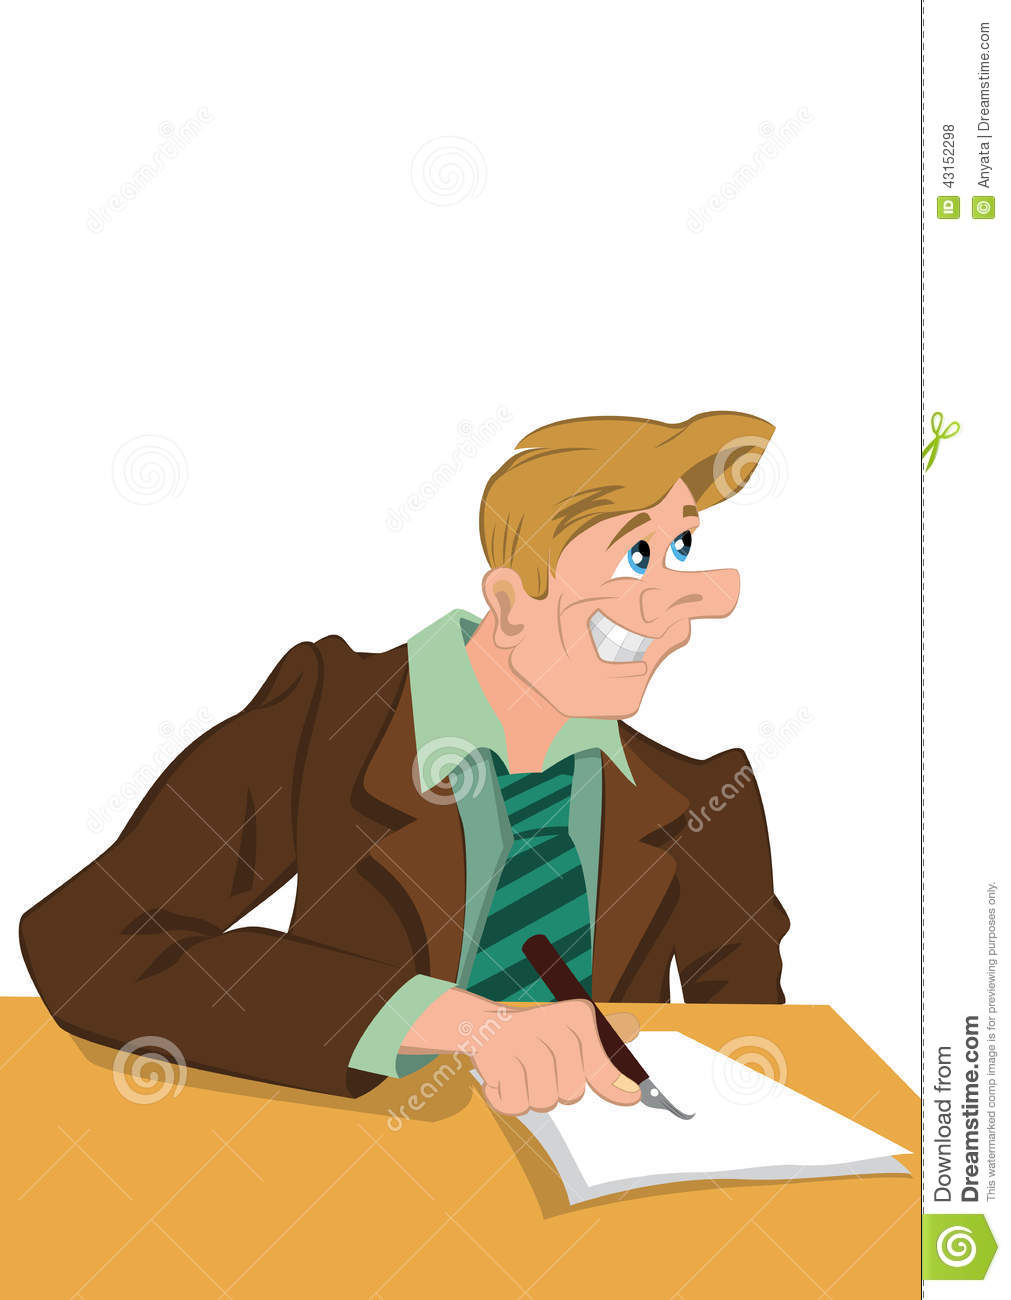 Retro hipster happy man writing with smile on his face